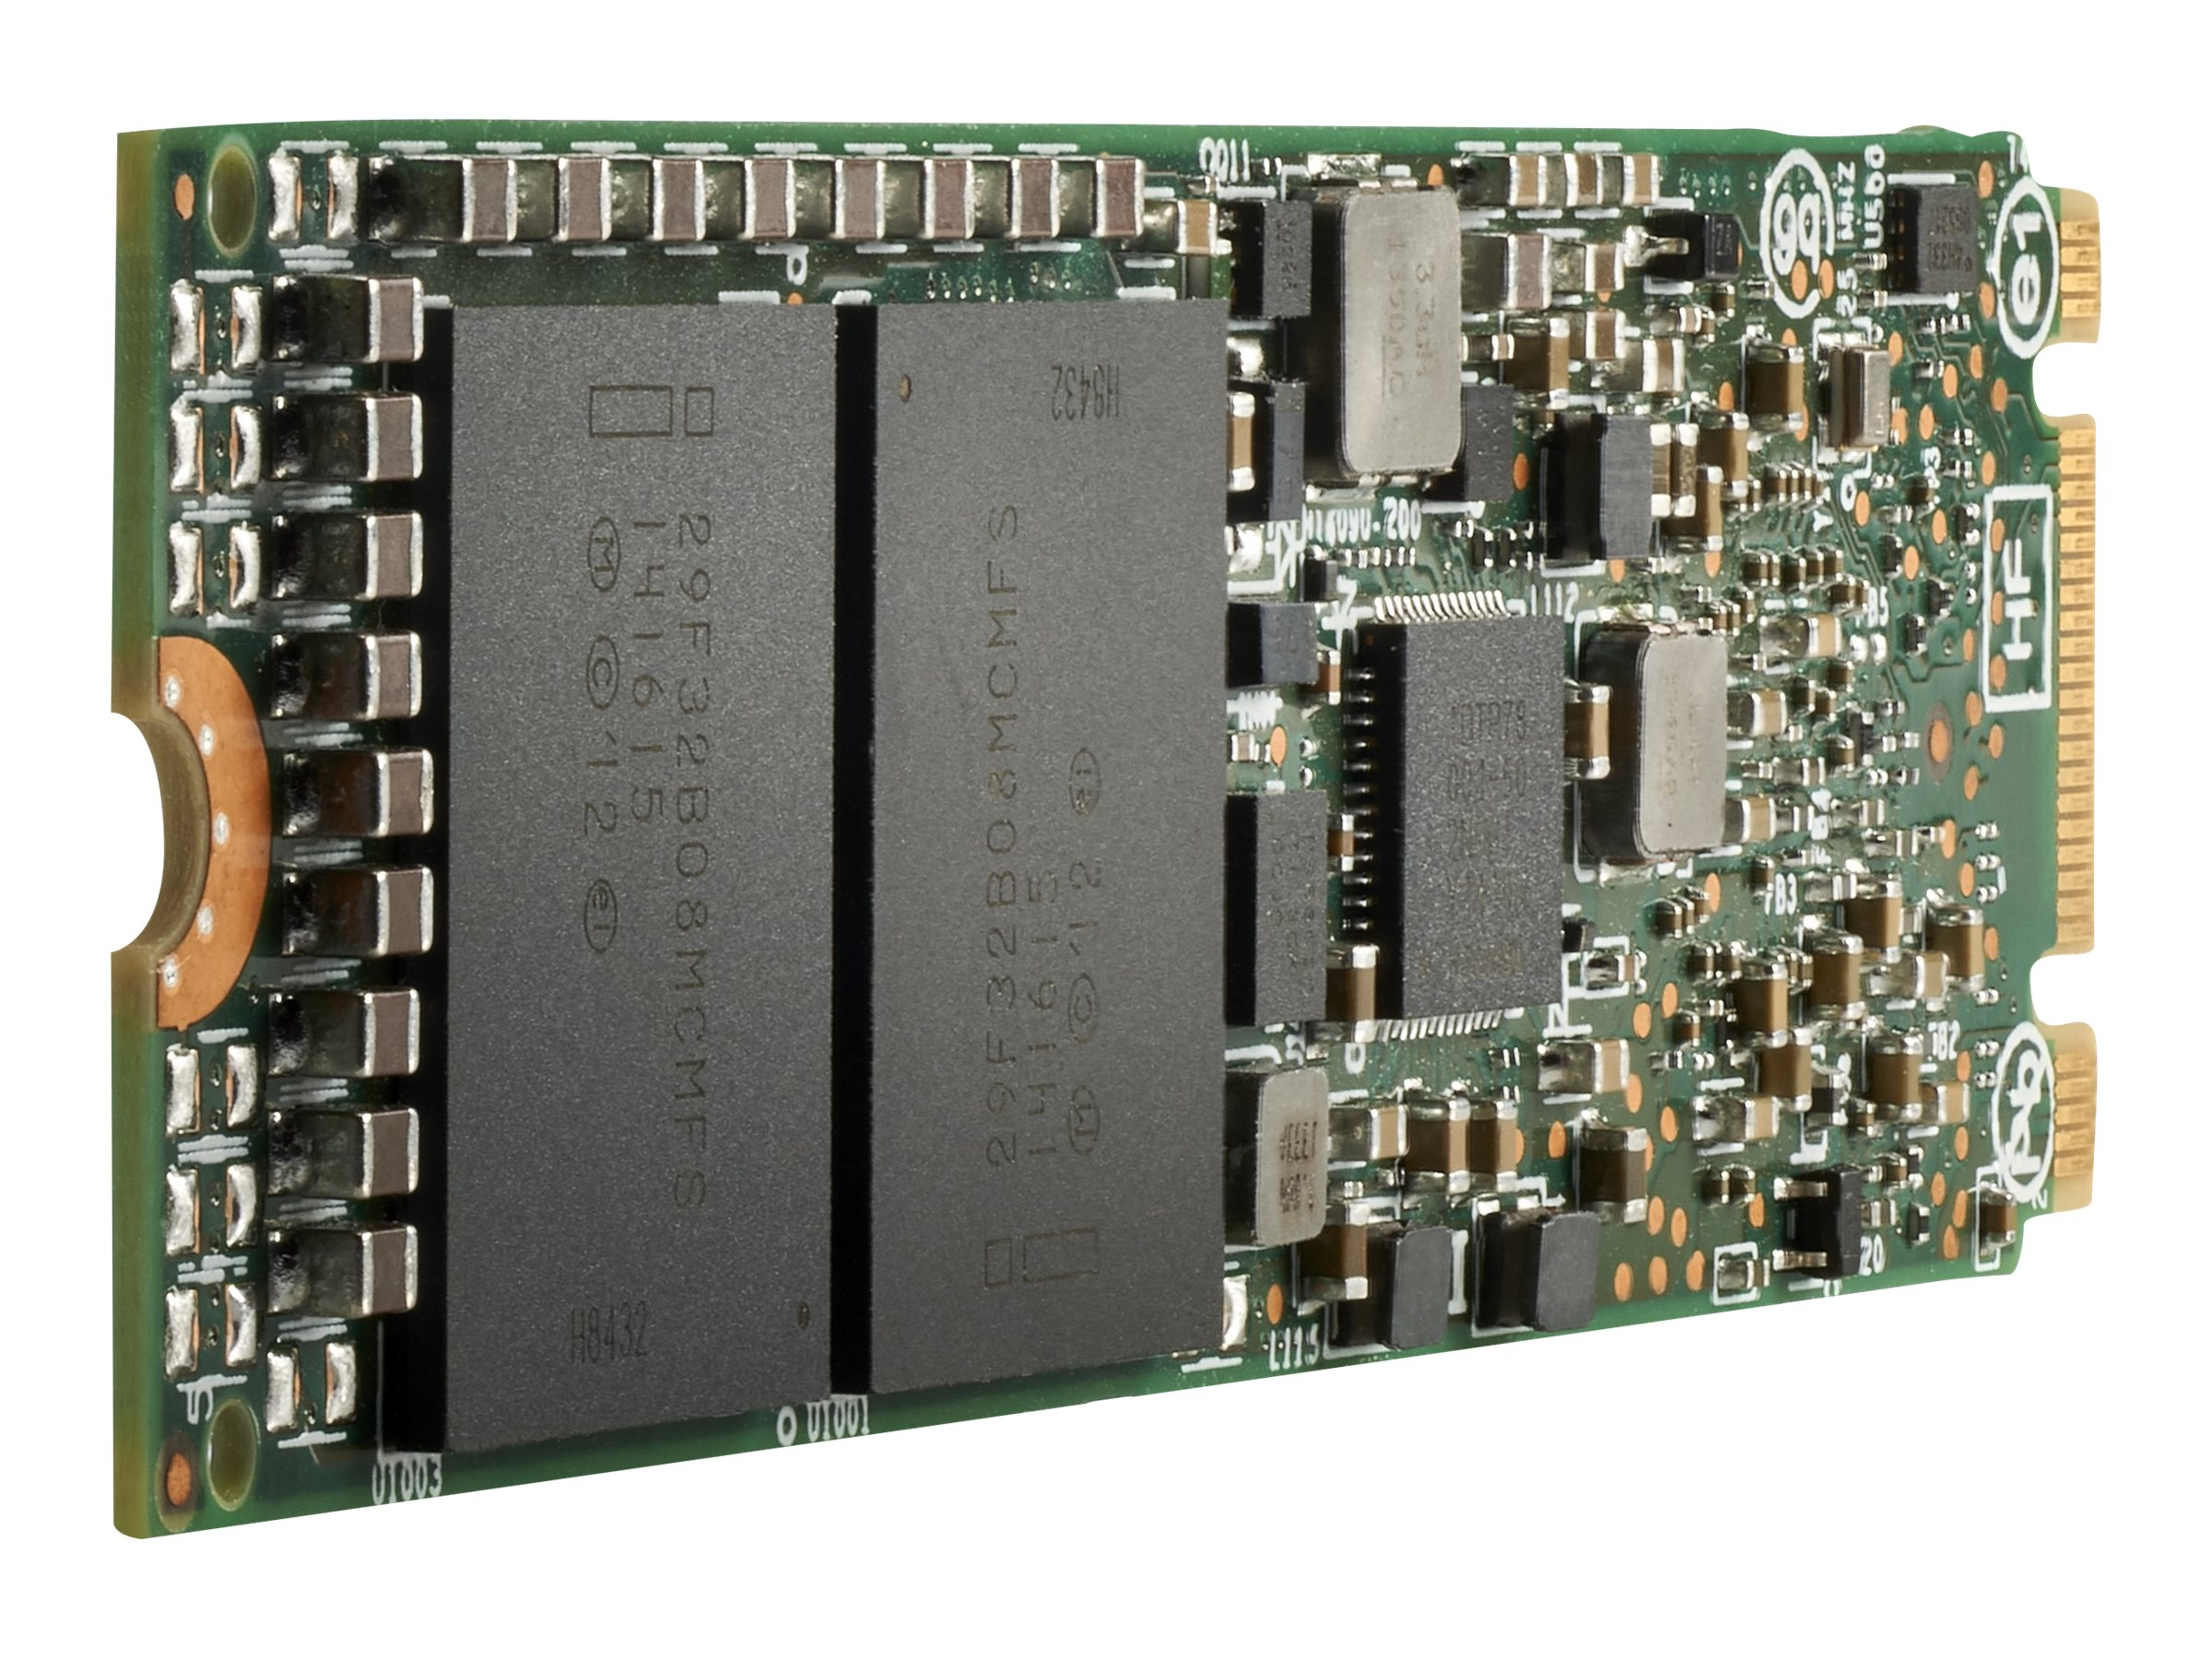 HPE Read Intensive - Solid-State-Disk - 1.92 TB - intern - M.2 22110 - PCI Express x4 (NVMe)